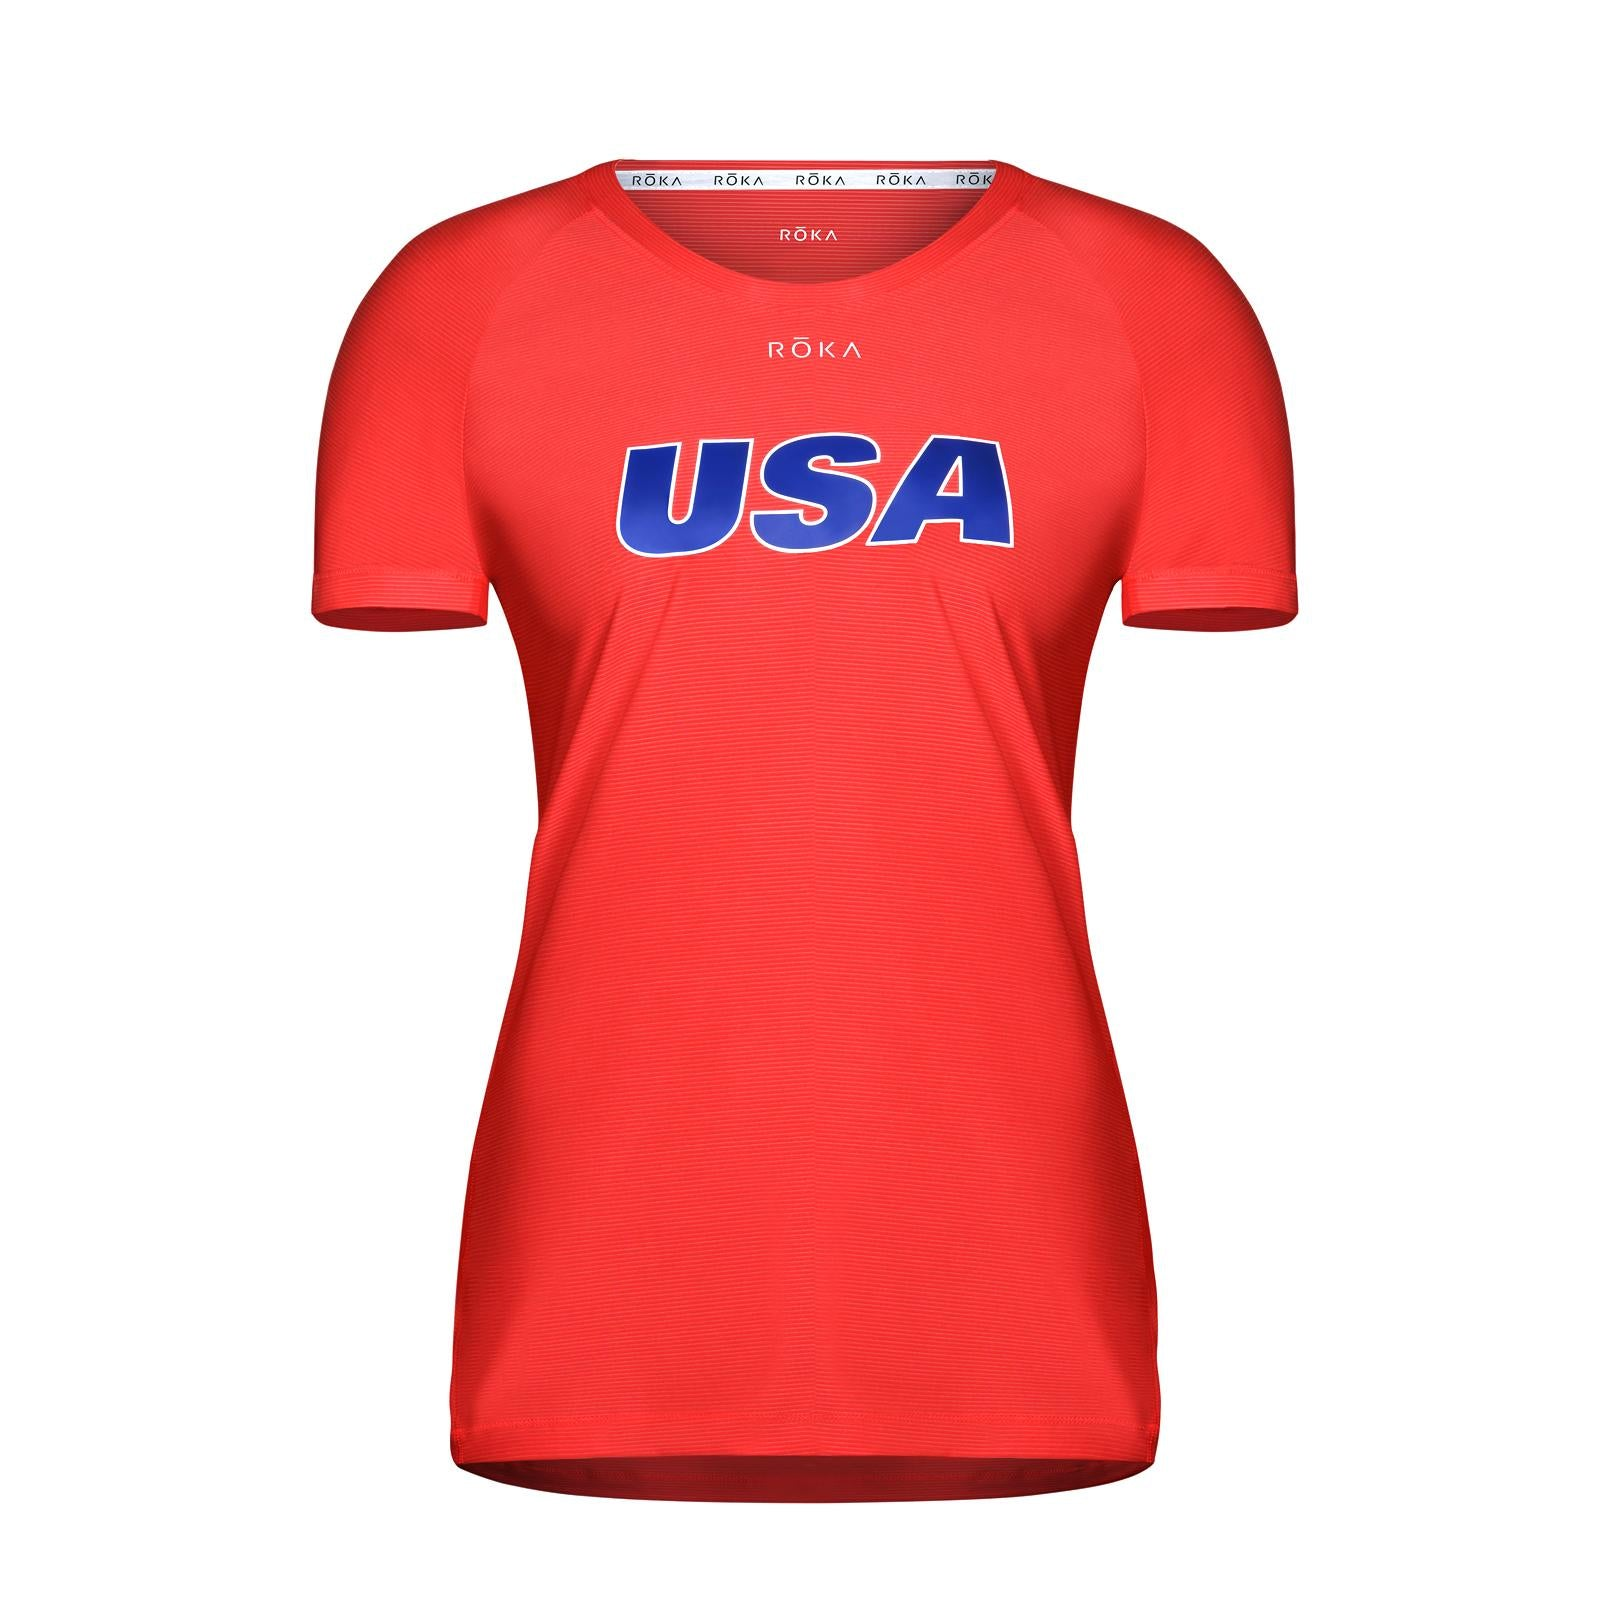 Women's USA Short-Sleeve Tech Tee - Red